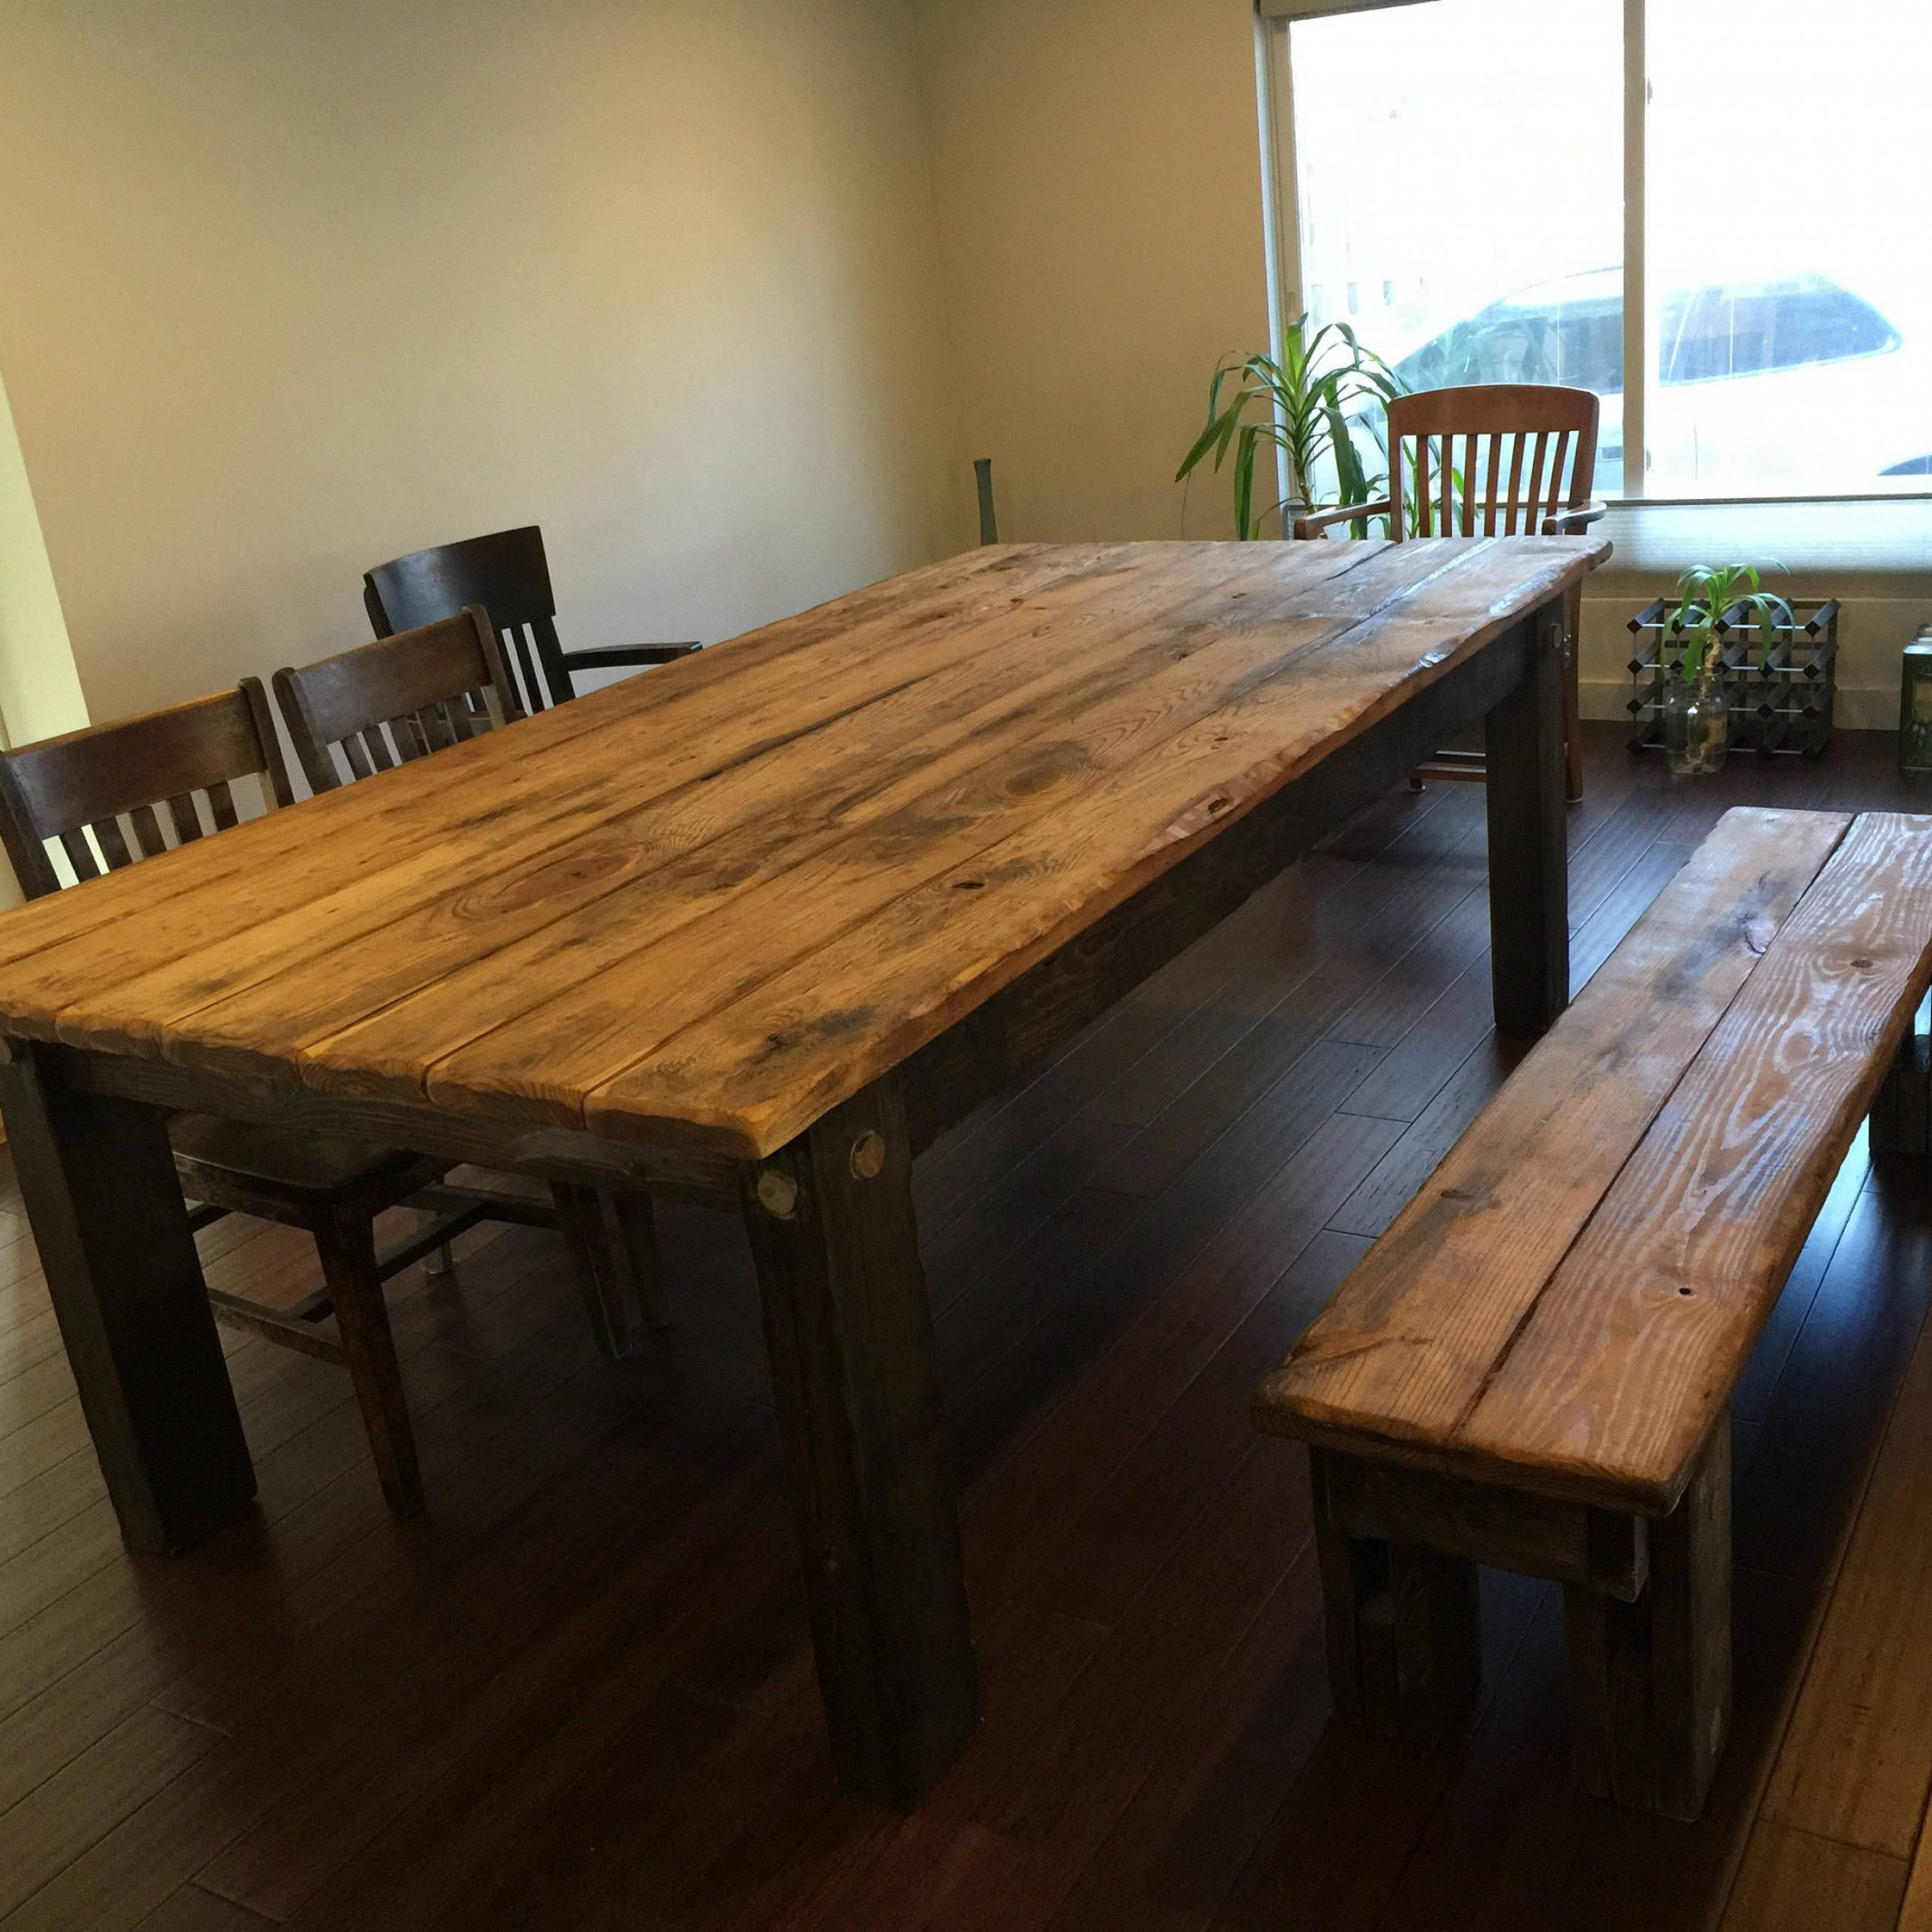 Rustic Farmhouse Table Set Large Farm House Cabin 8-Foot regarding Widely used Distressed Walnut And Black Finish Wood Modern Country Dining Tables